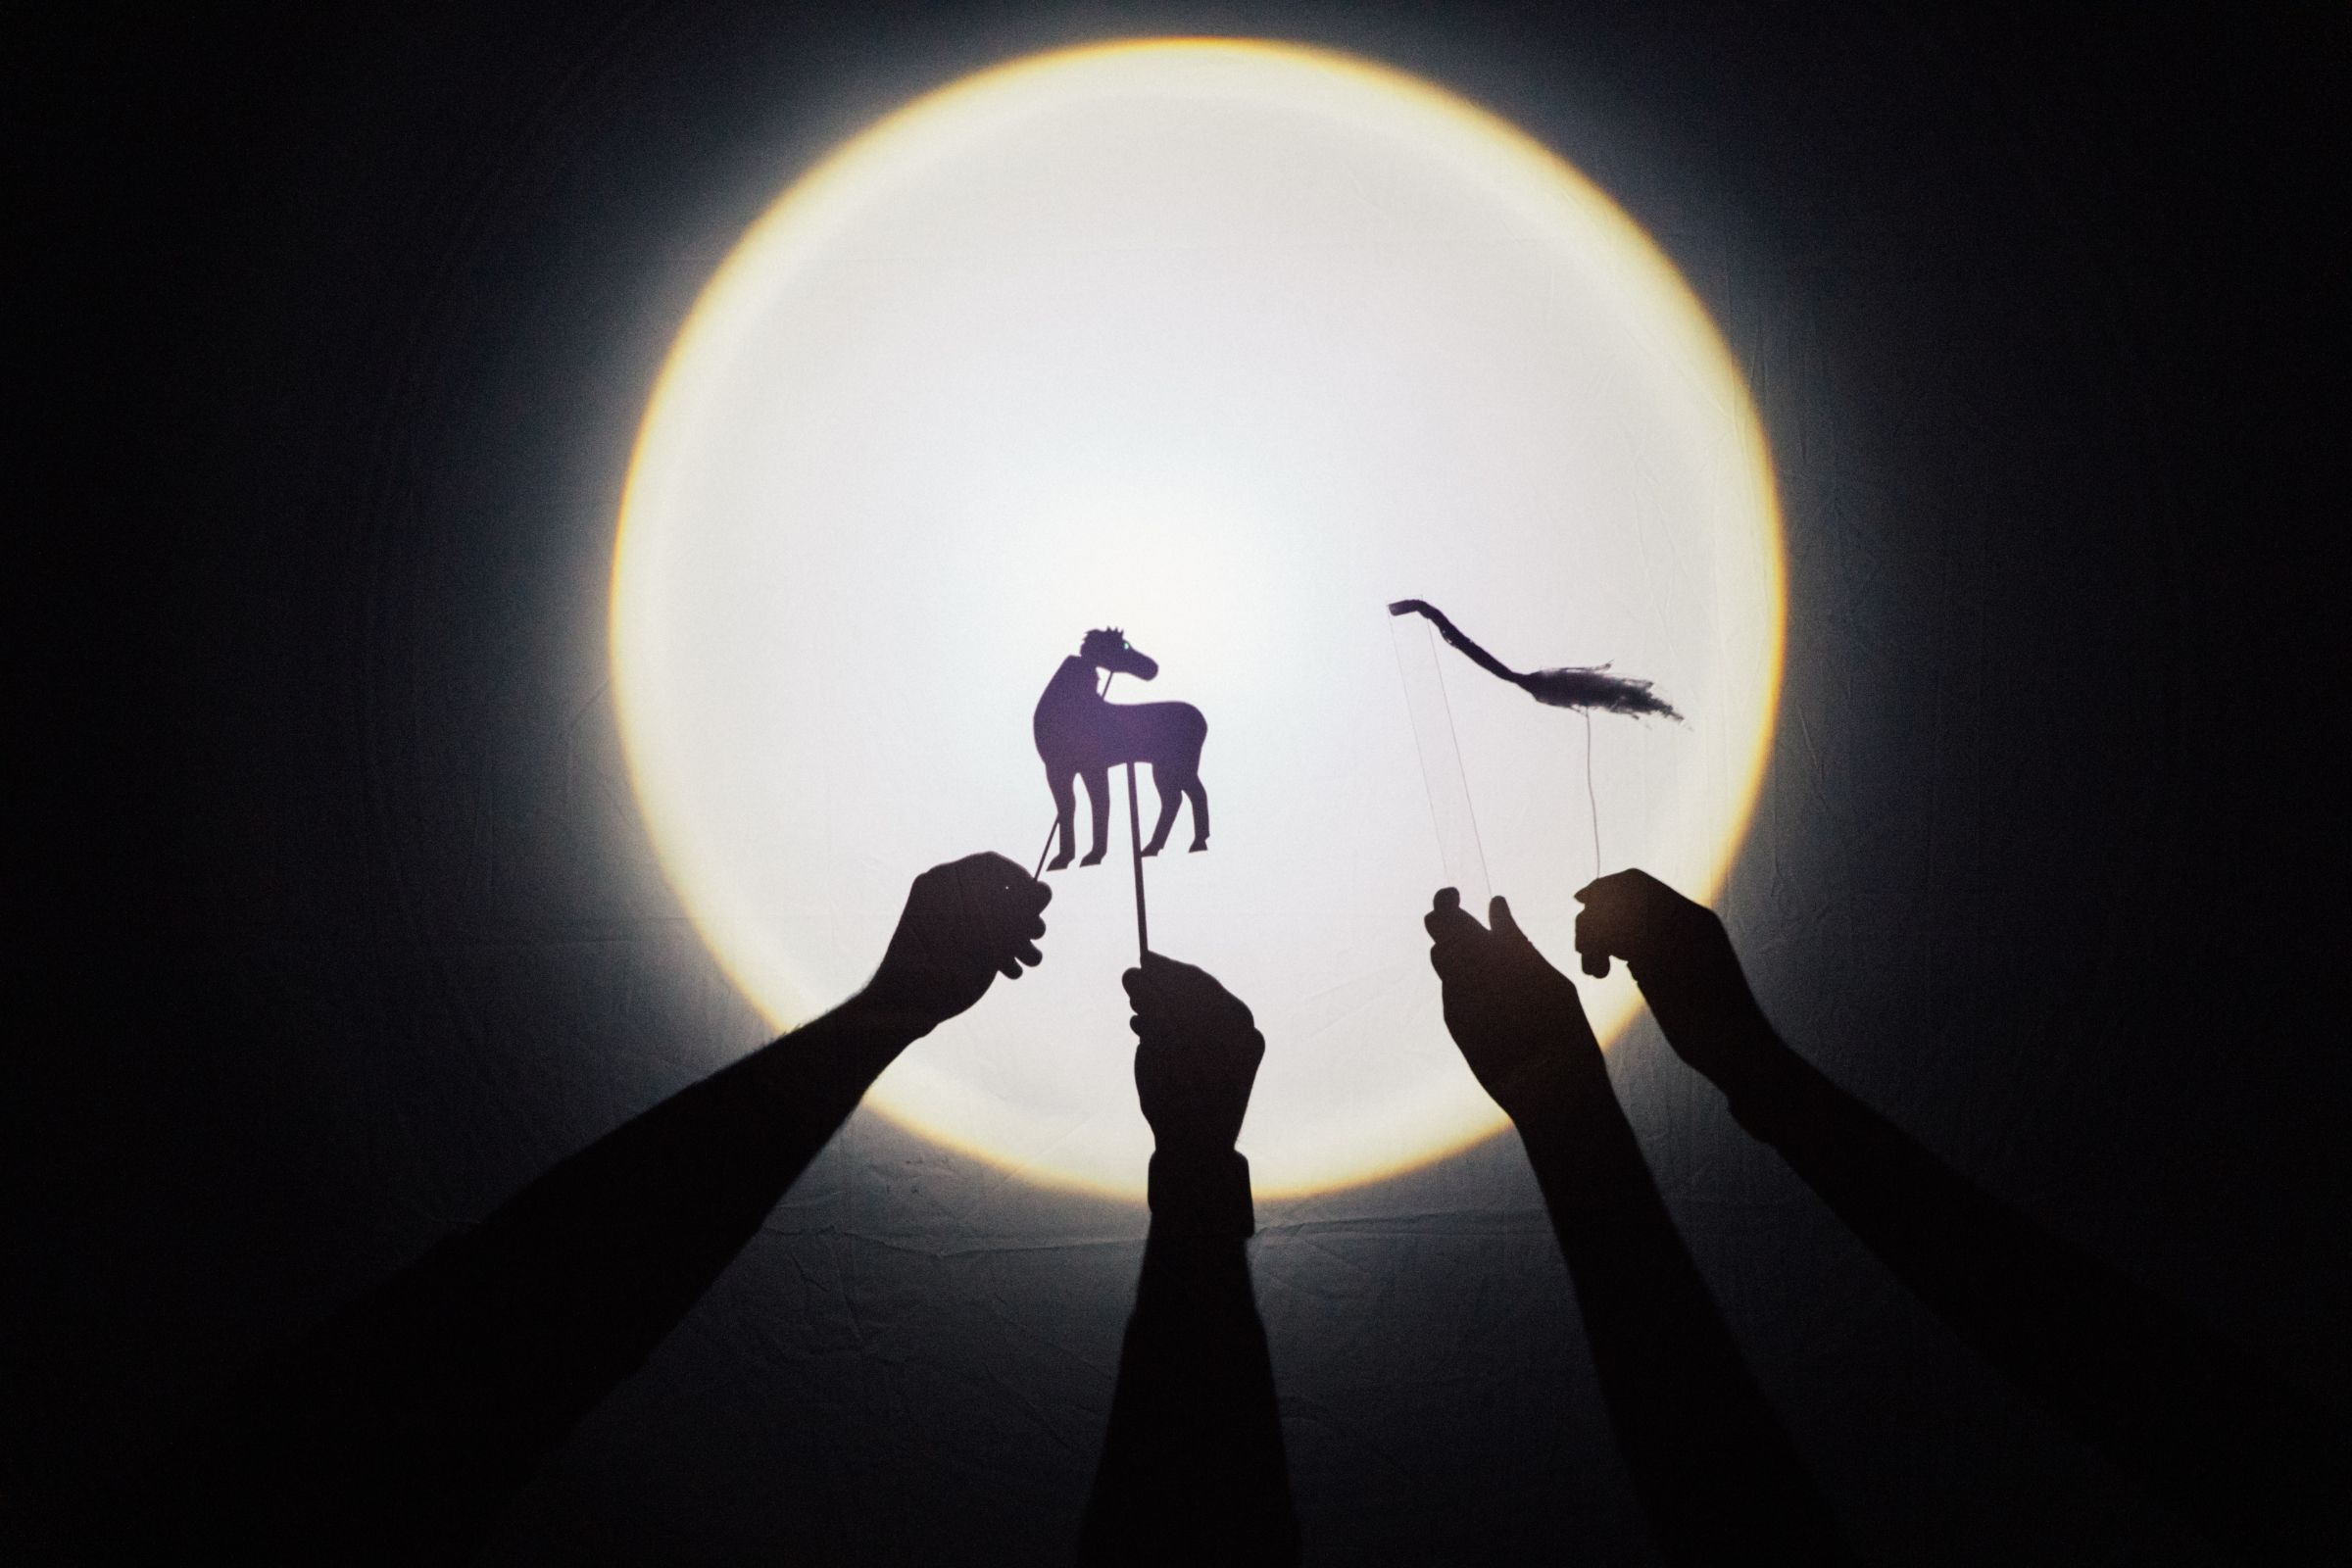 Silhouette of hands and small animal puppets again a moon-like spotlight